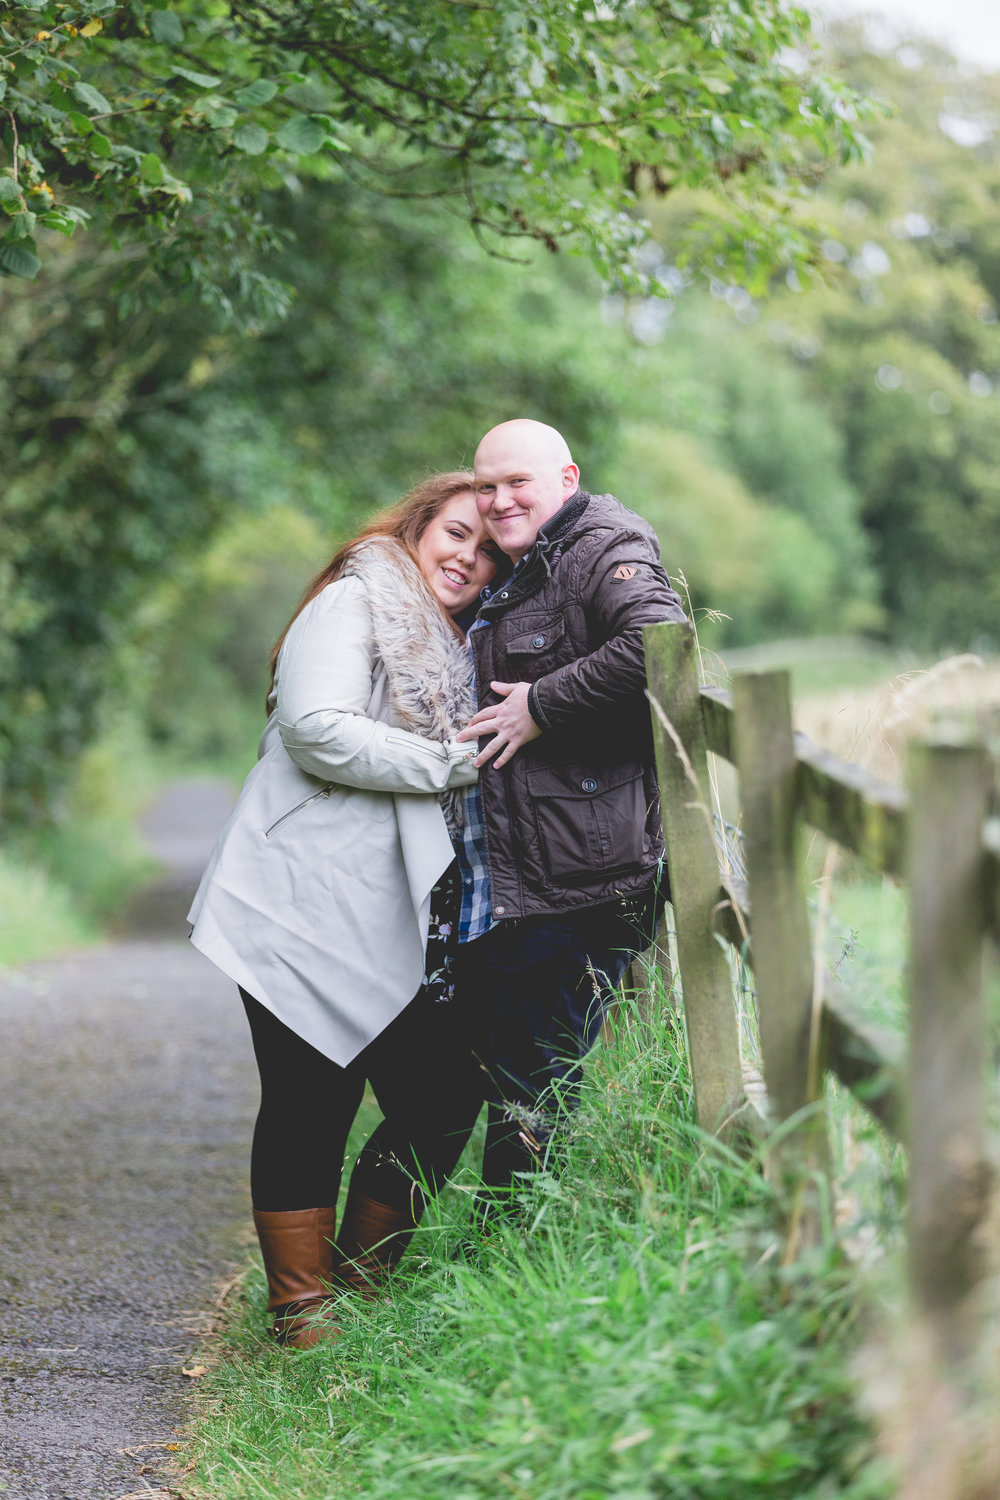 023-Melissa and Adam-Engagement-Wycoller Country Park-Photo-Melissa and Adam-Engagement-Wycoller Country Park-Photo-Melissa and Adam-Engagement-Wycoller Country Park-Photo-Melissa and Adam-Engagement-Wycoller Country Park-Photo.jpg